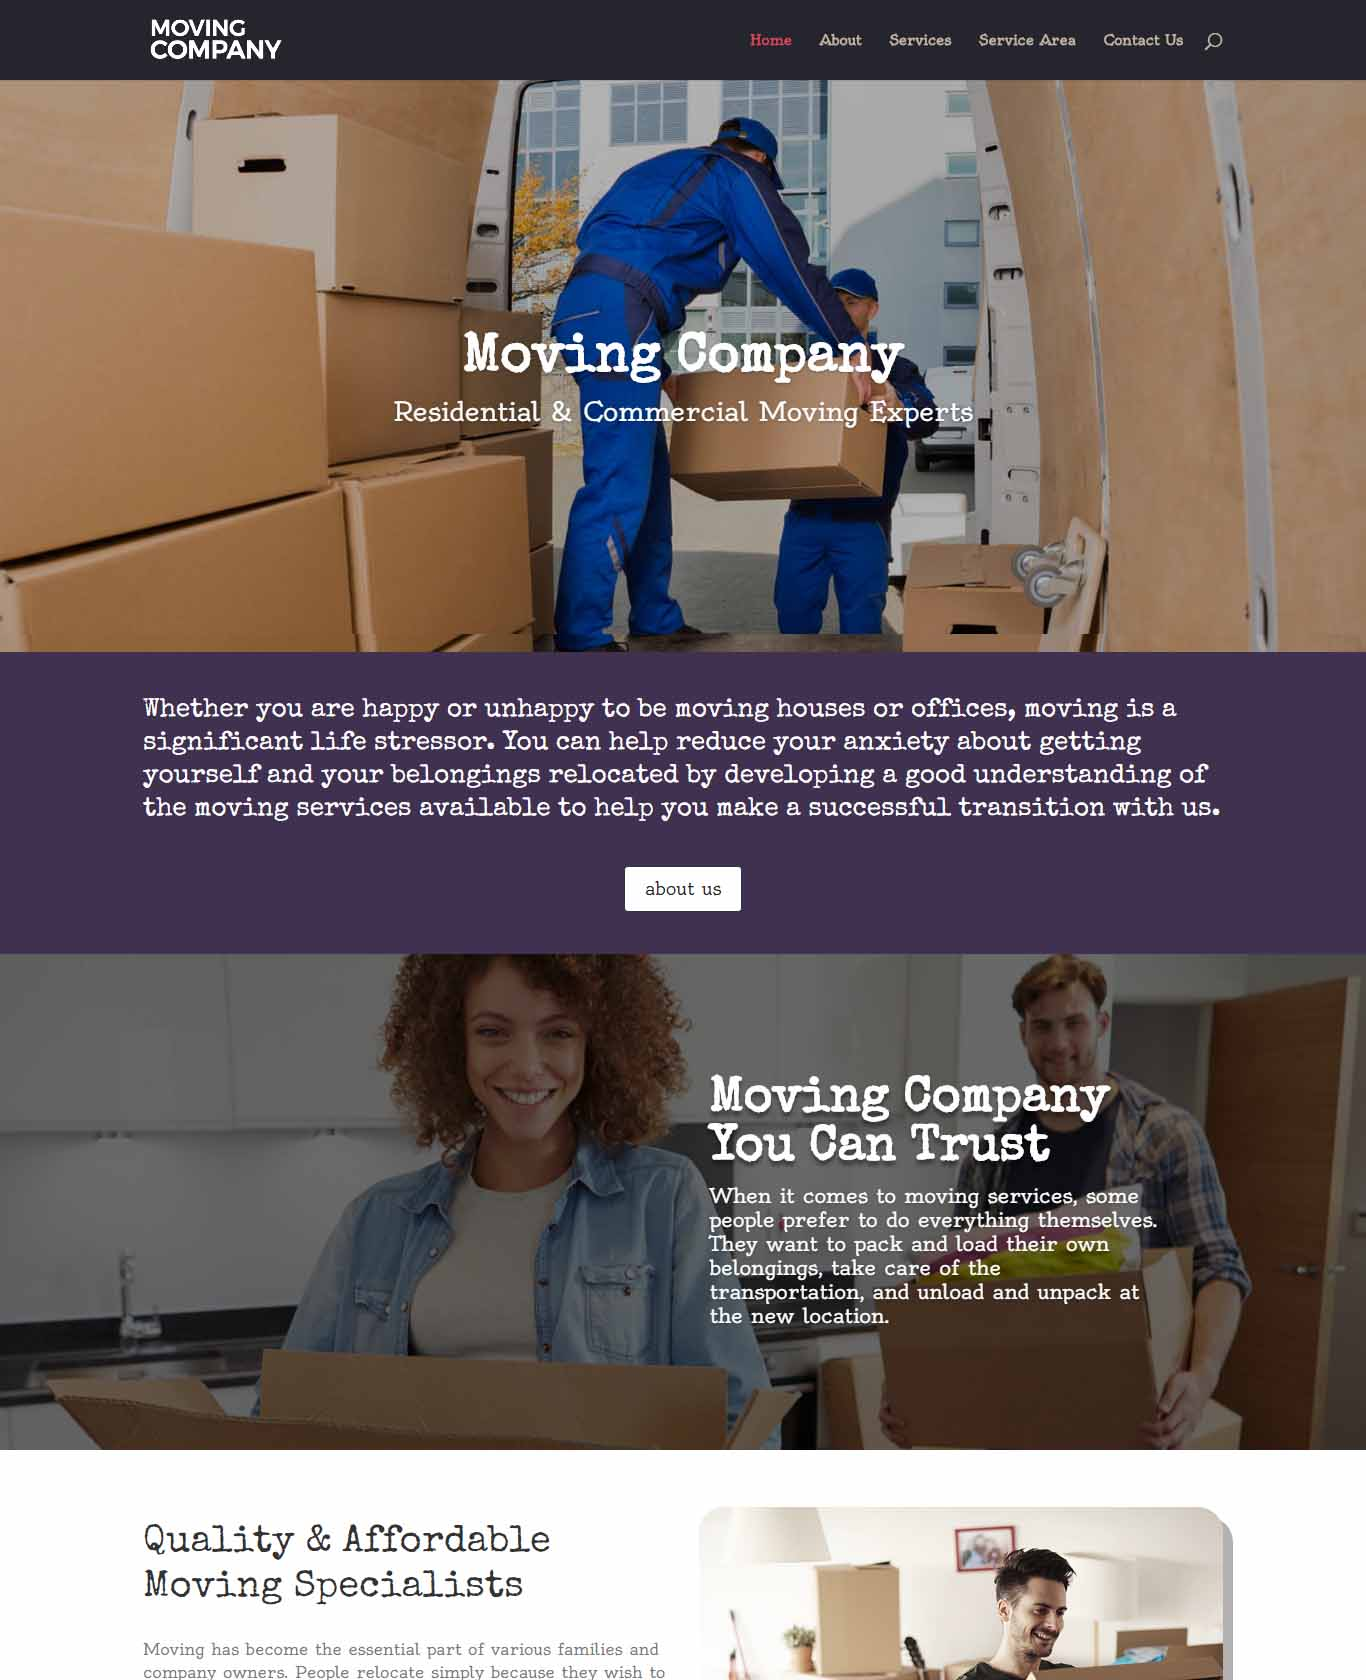 Moving Website Sample Design 4